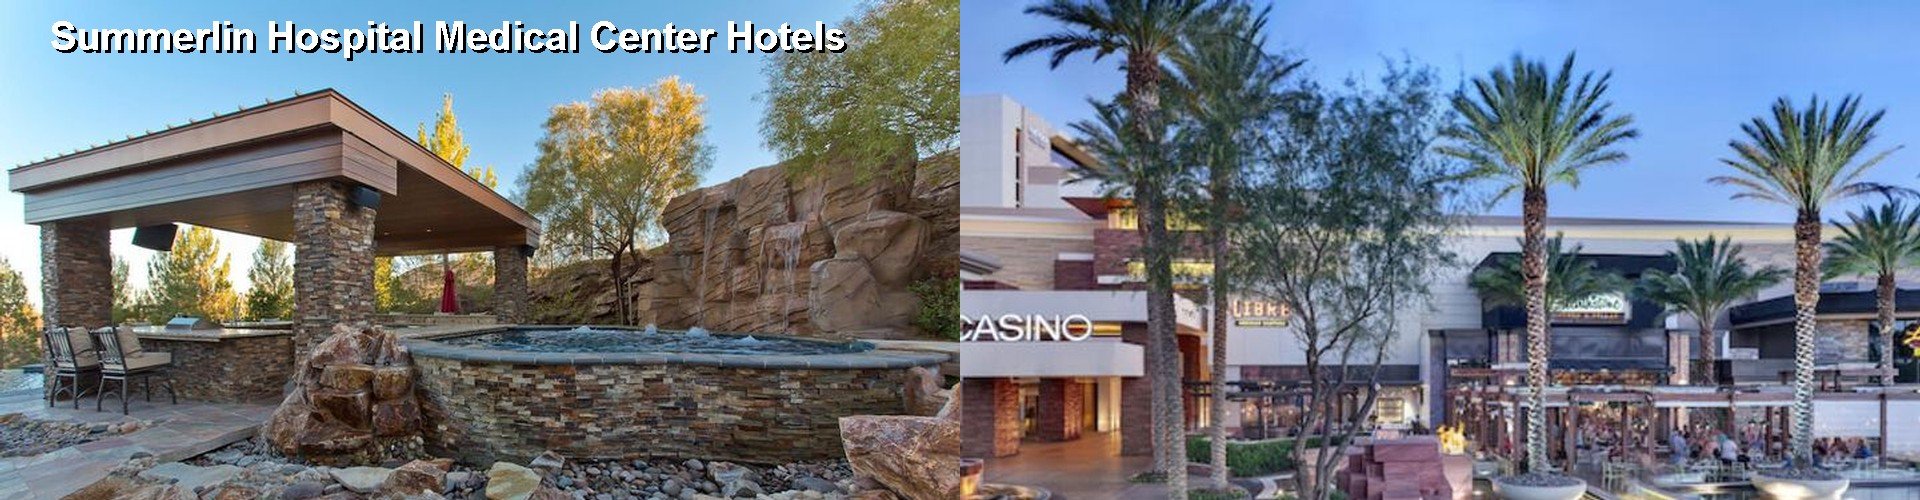 5 Best Hotels Near Summerlin Hospital Medical Center